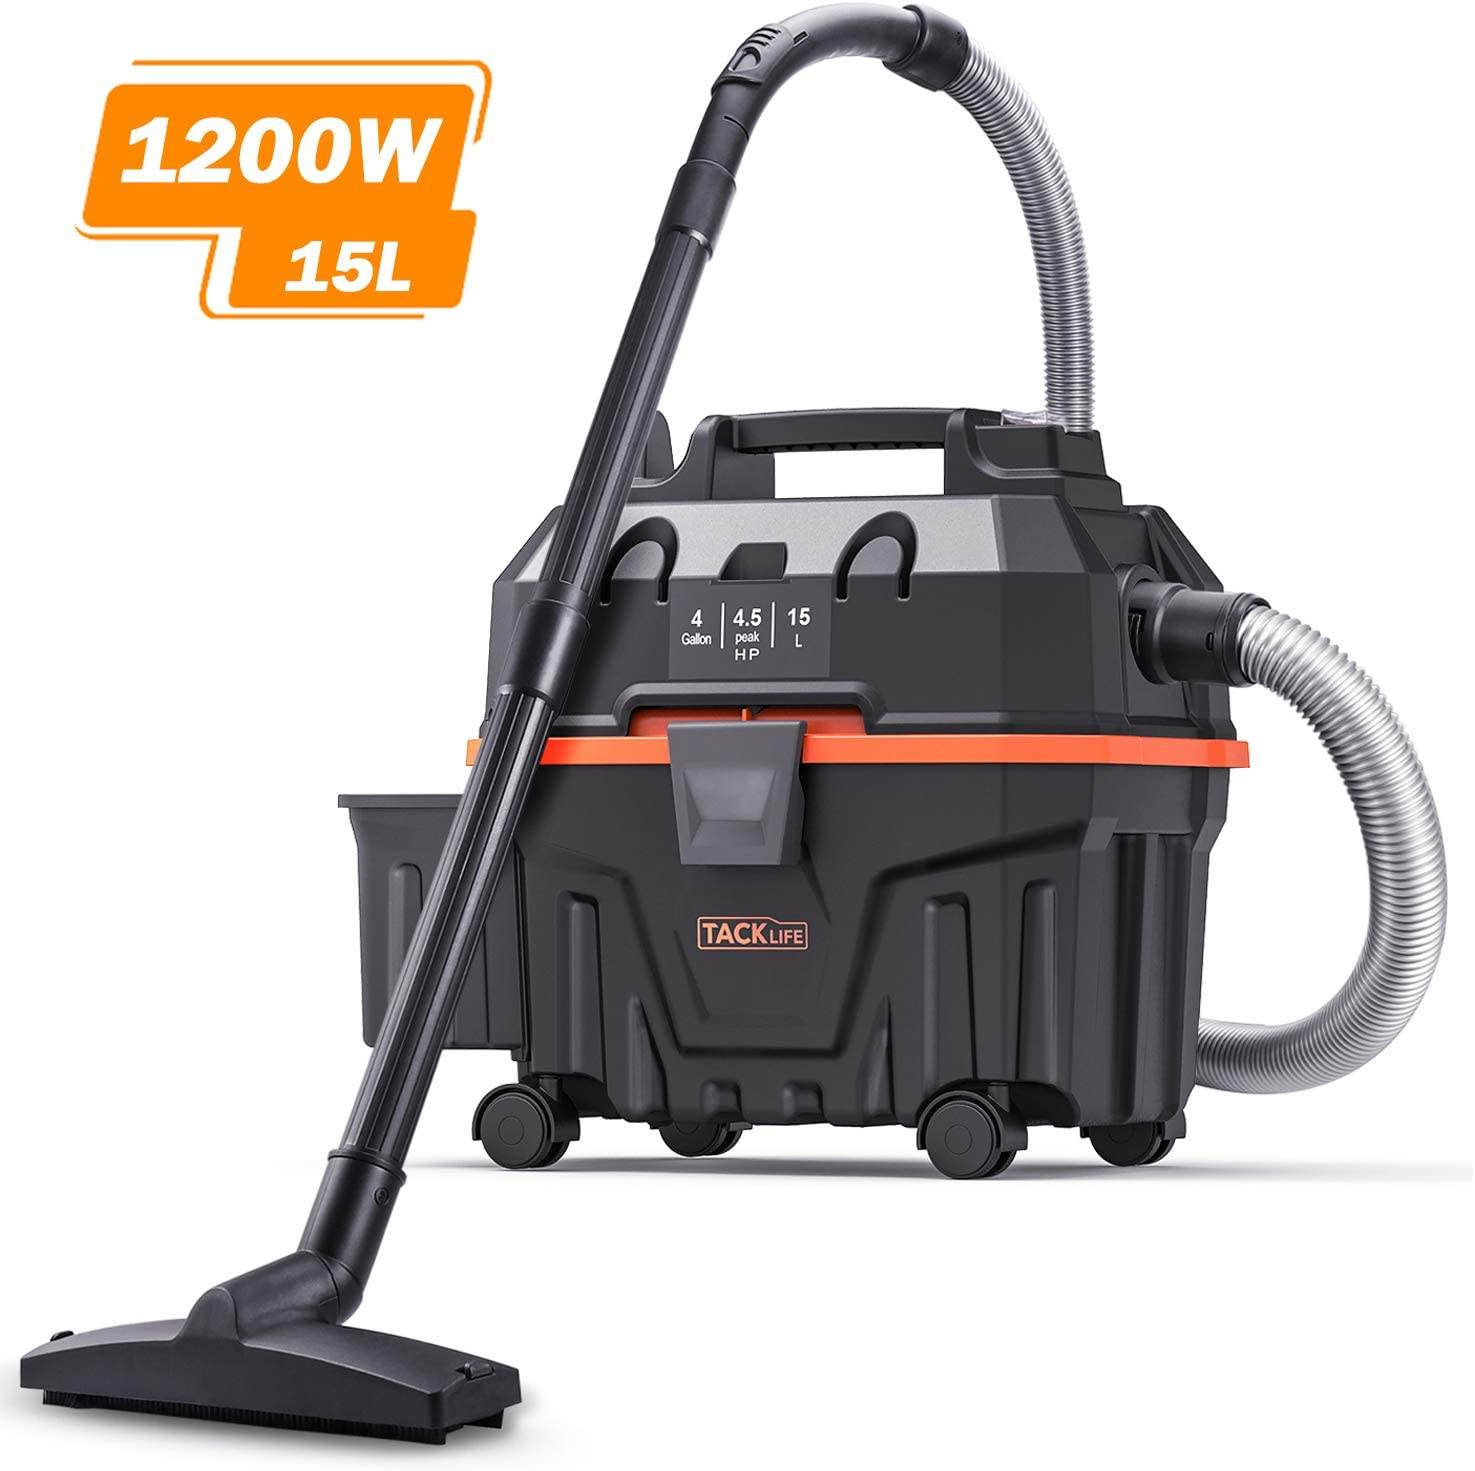 Wet and Dry Vacuum, TACKLIFE 4 Gallon 1200W 4.5 Peak Hp Bagless Wet Dry Vacuum, Wet Suction Dry Suction Blowing 3 in 1 Function, Suitable for Indoor and Outdoor Use, PVC01B